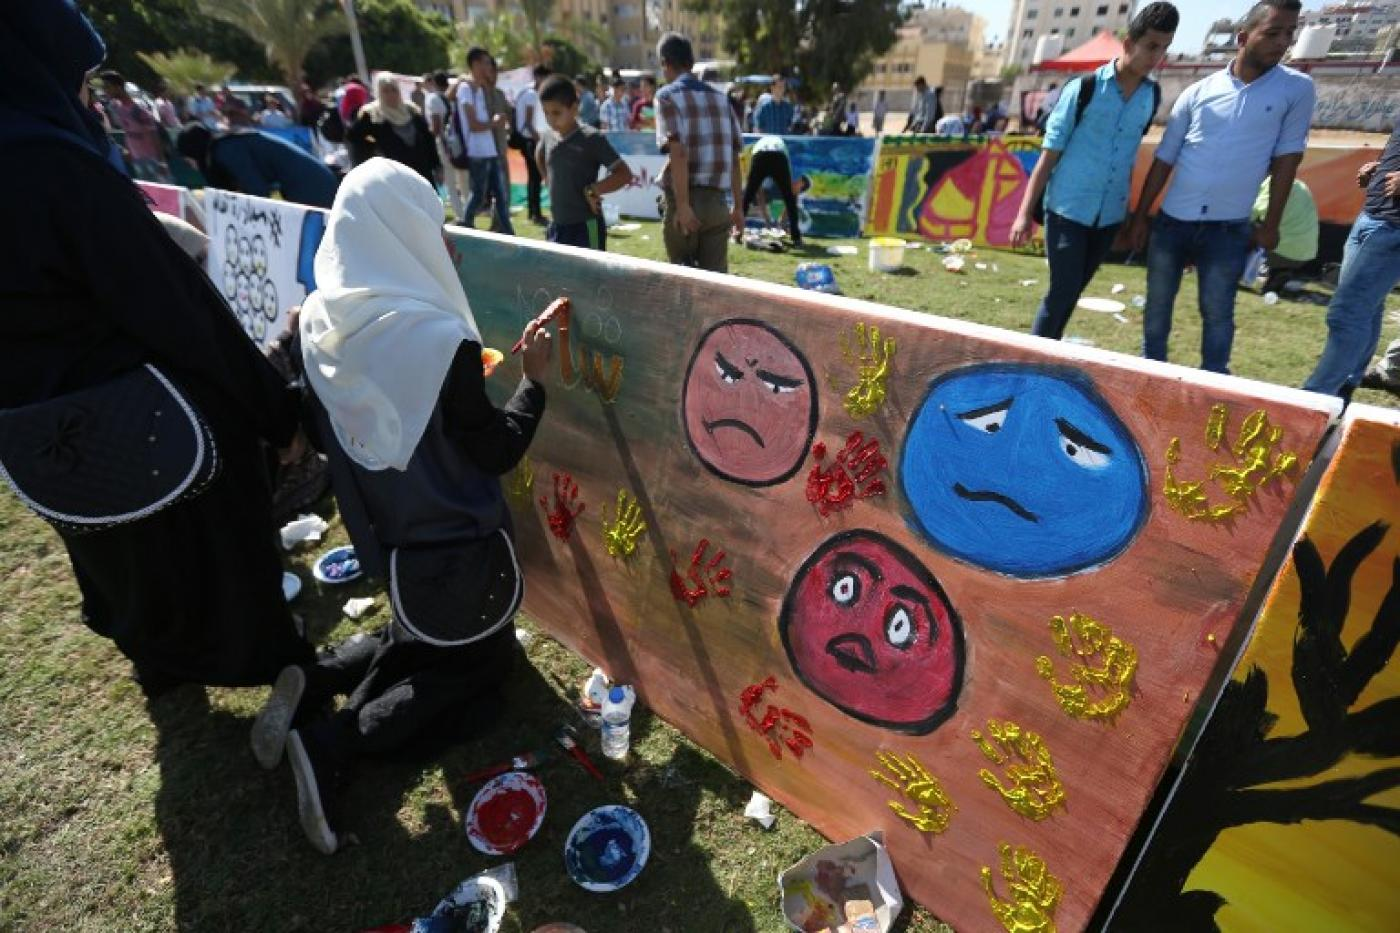 What Palestinians experience goes beyond the PTSD label